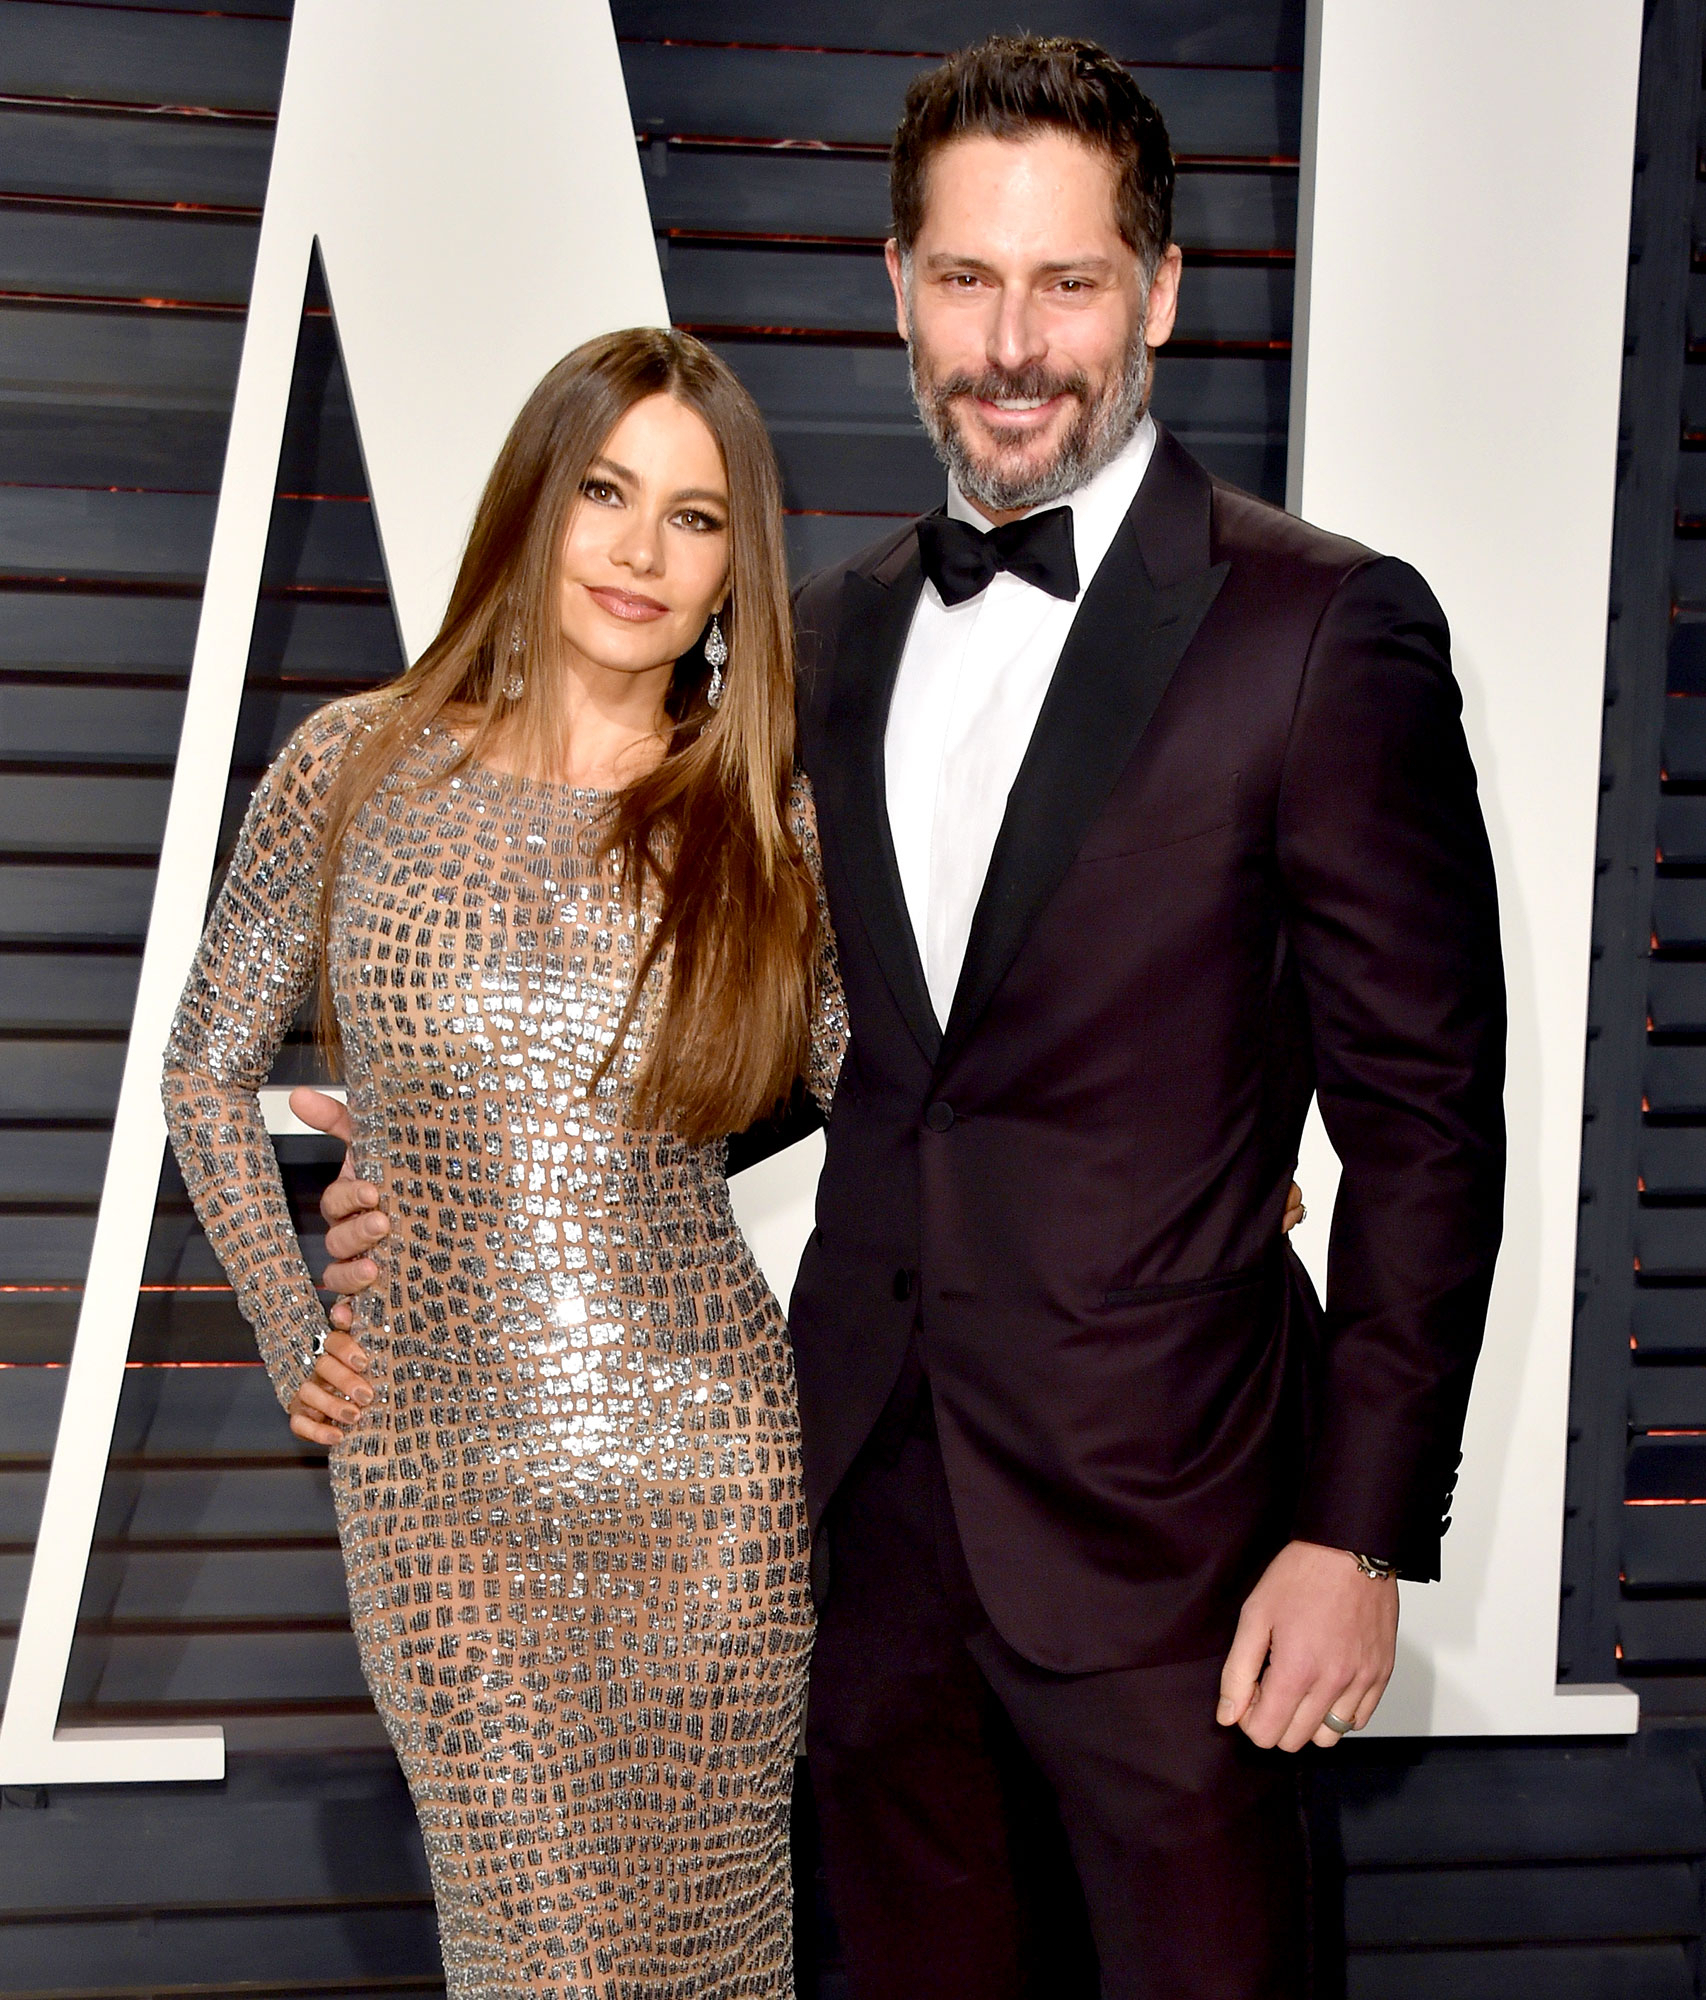 Sofia Vergara and Joe Manganiello attend the 2017 Vanity Fair Oscar Party hosted by Graydon Carter at Wallis Annenberg Center for the Performing Arts on February 26, 2017 in Beverly Hills, California.